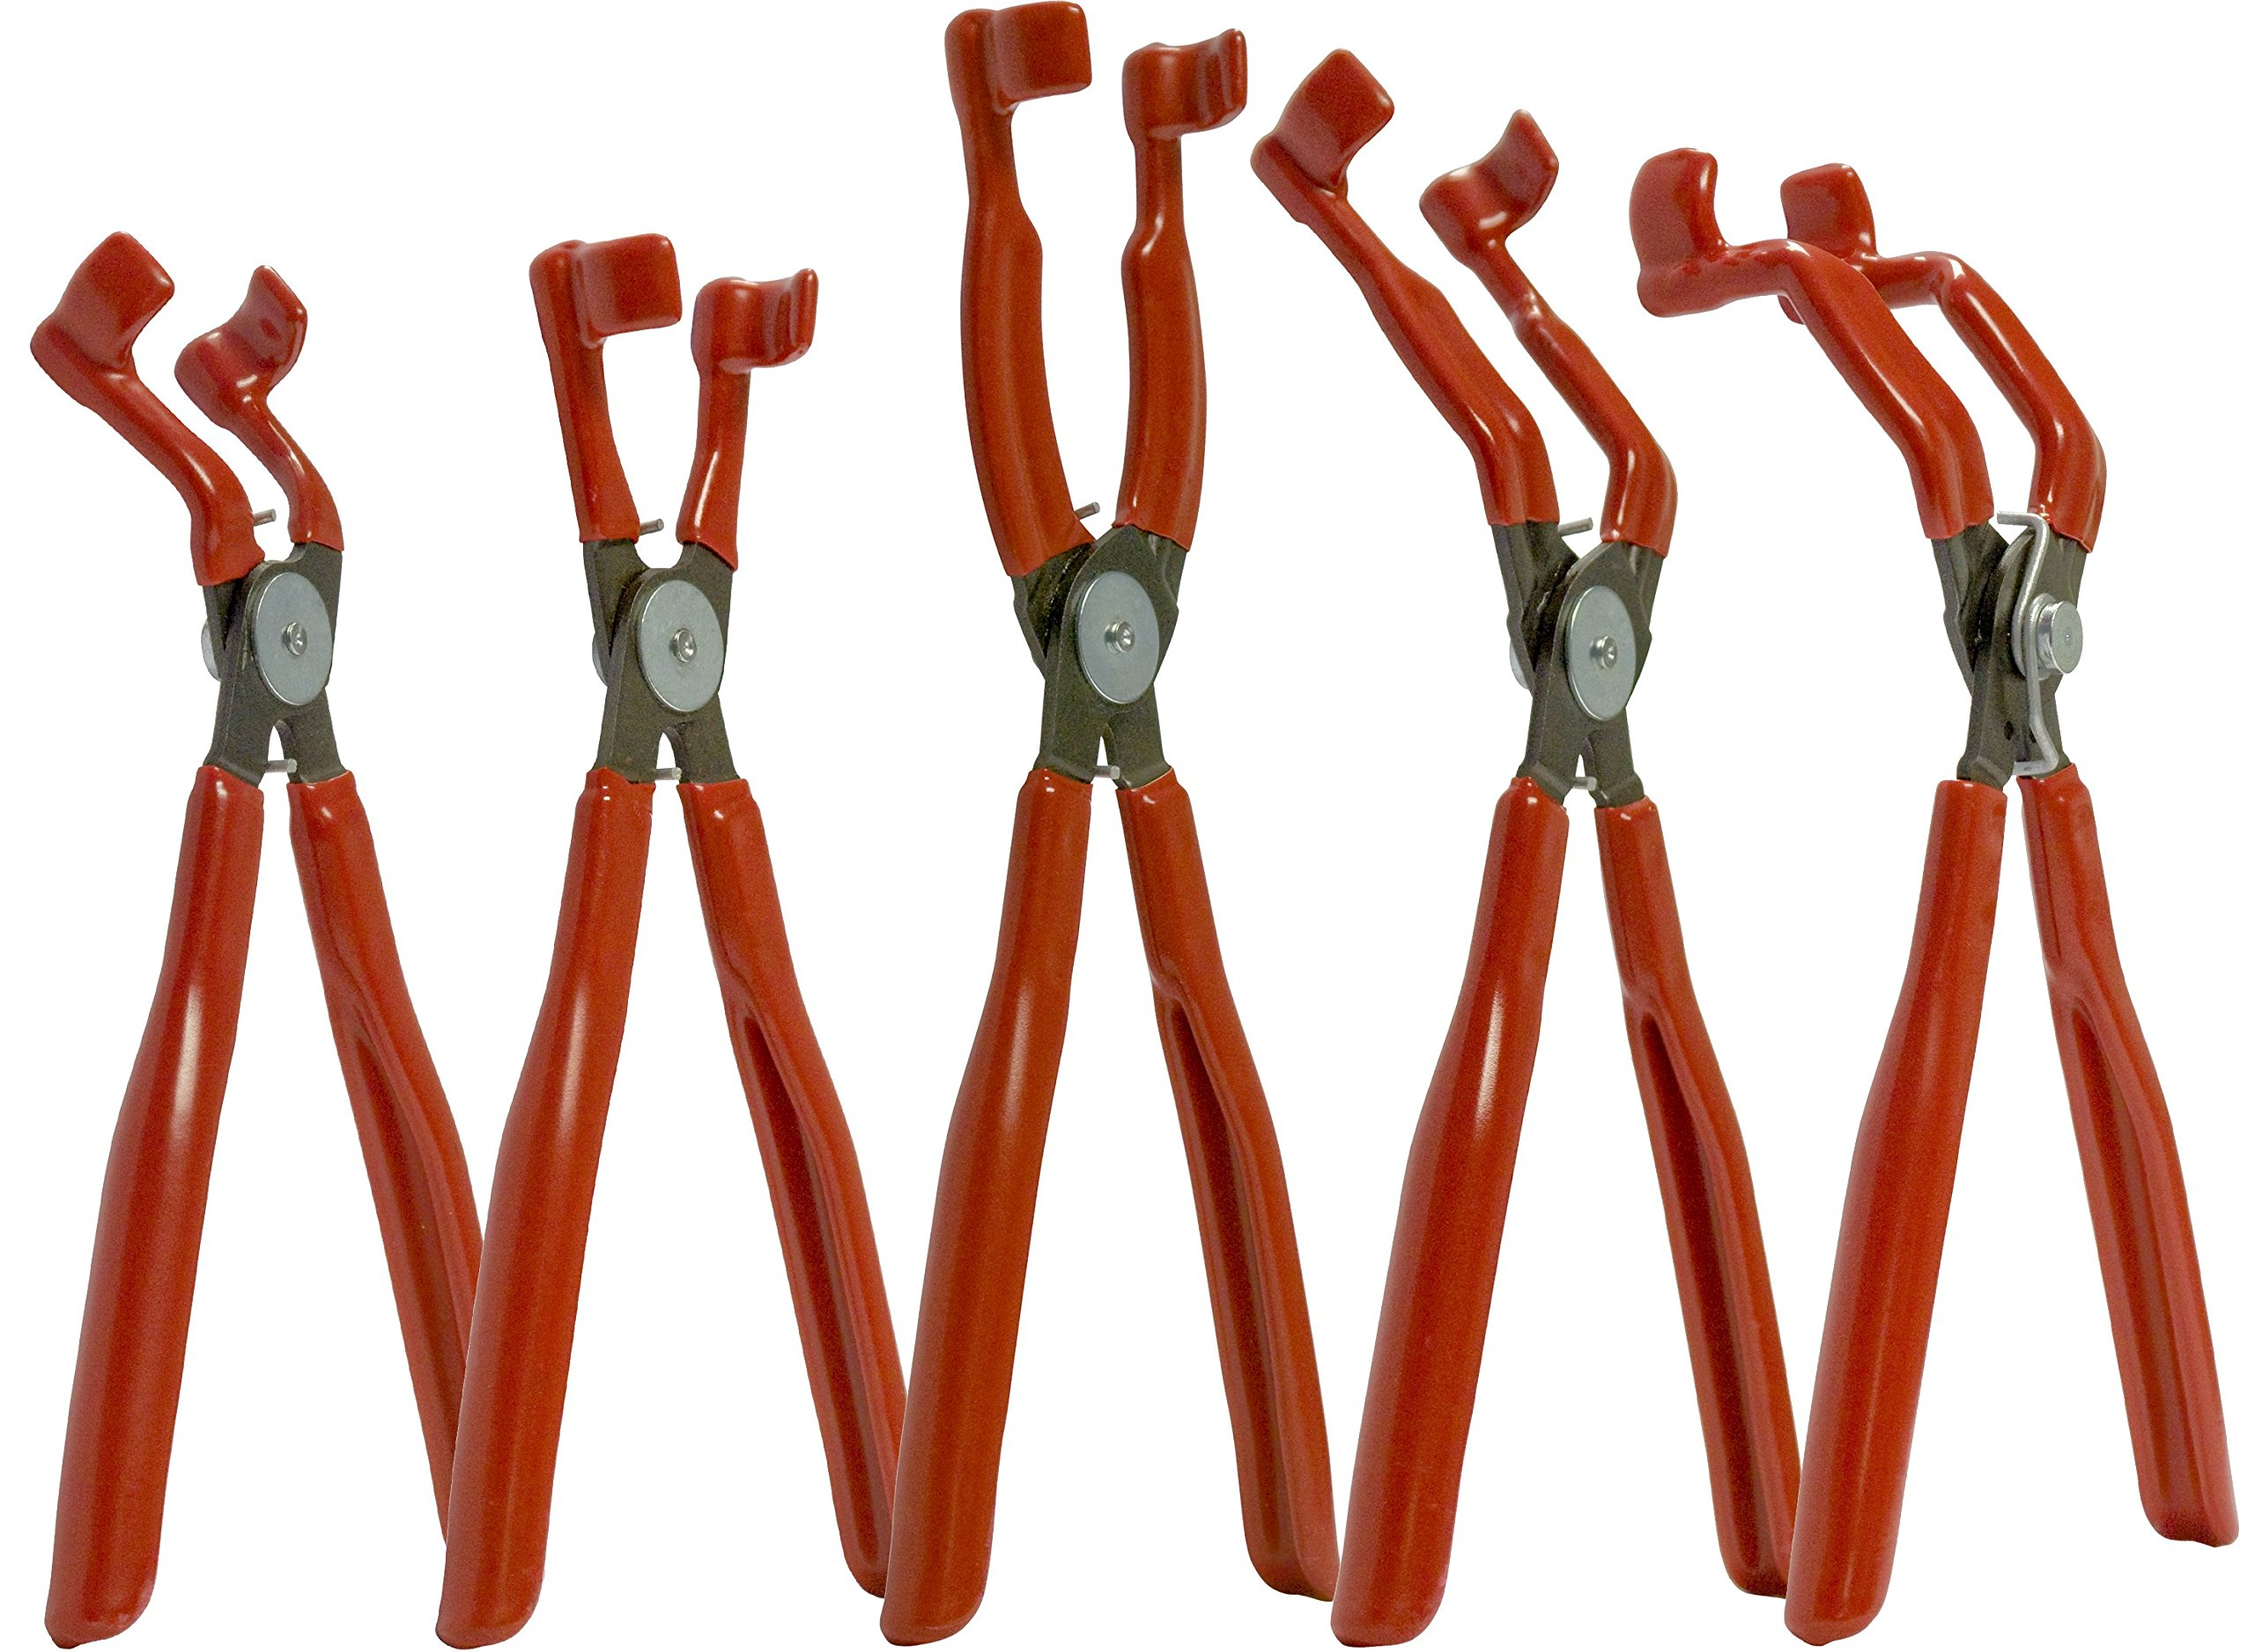 MAG-MATE PLS100S Spark Plug Boot Pliers Set (5 Piece), Red by Mag-Mate